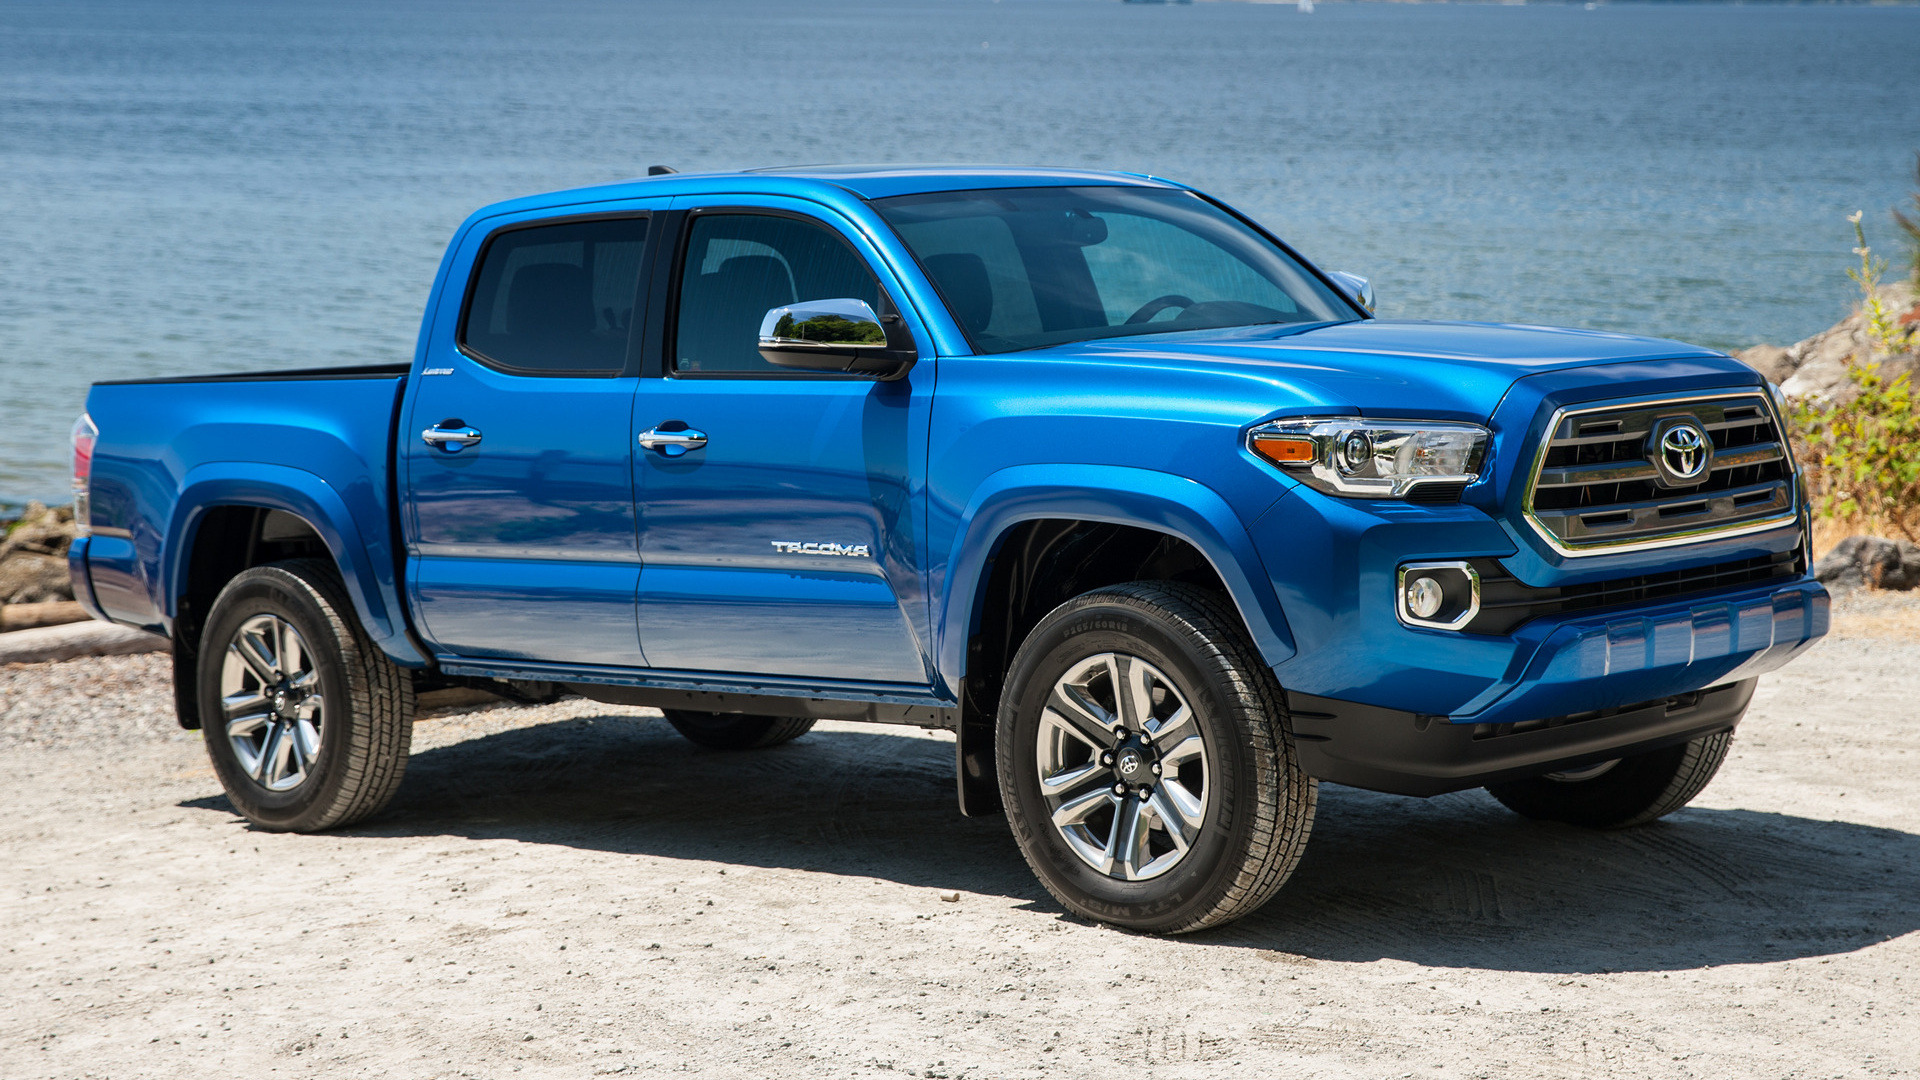 Toyota Tacoma Limited Double Cab (2016) Wallpapers and HD ...